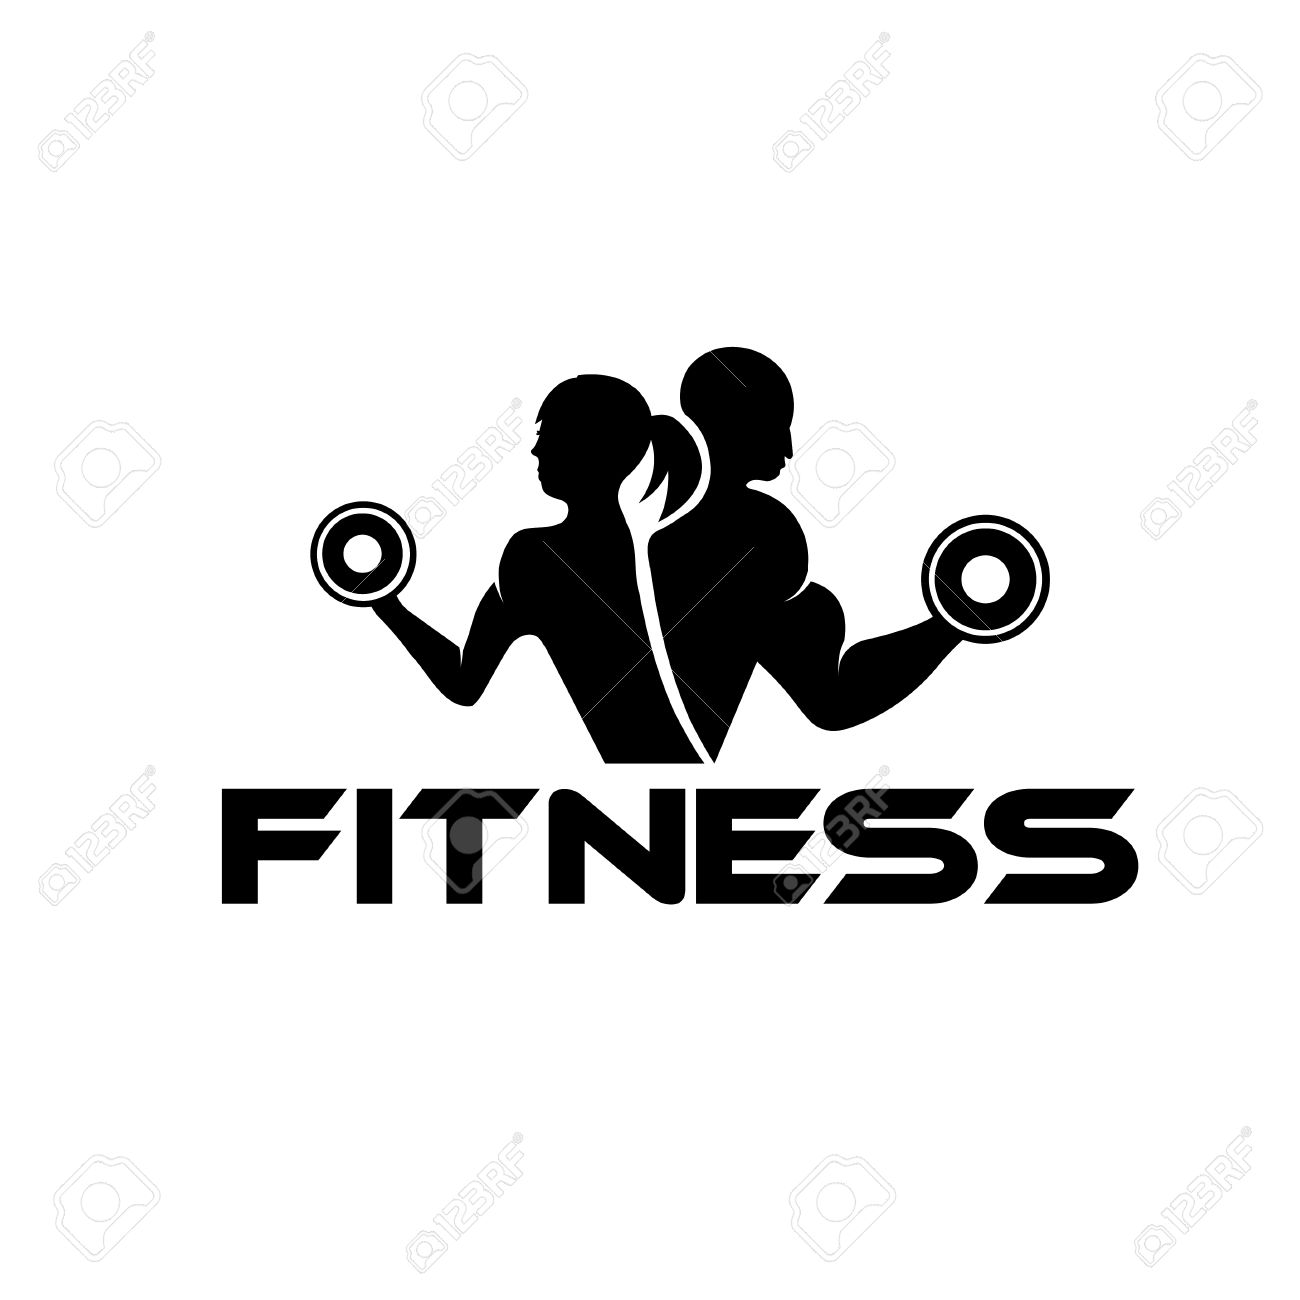 Free Black And White Fitness Clipart